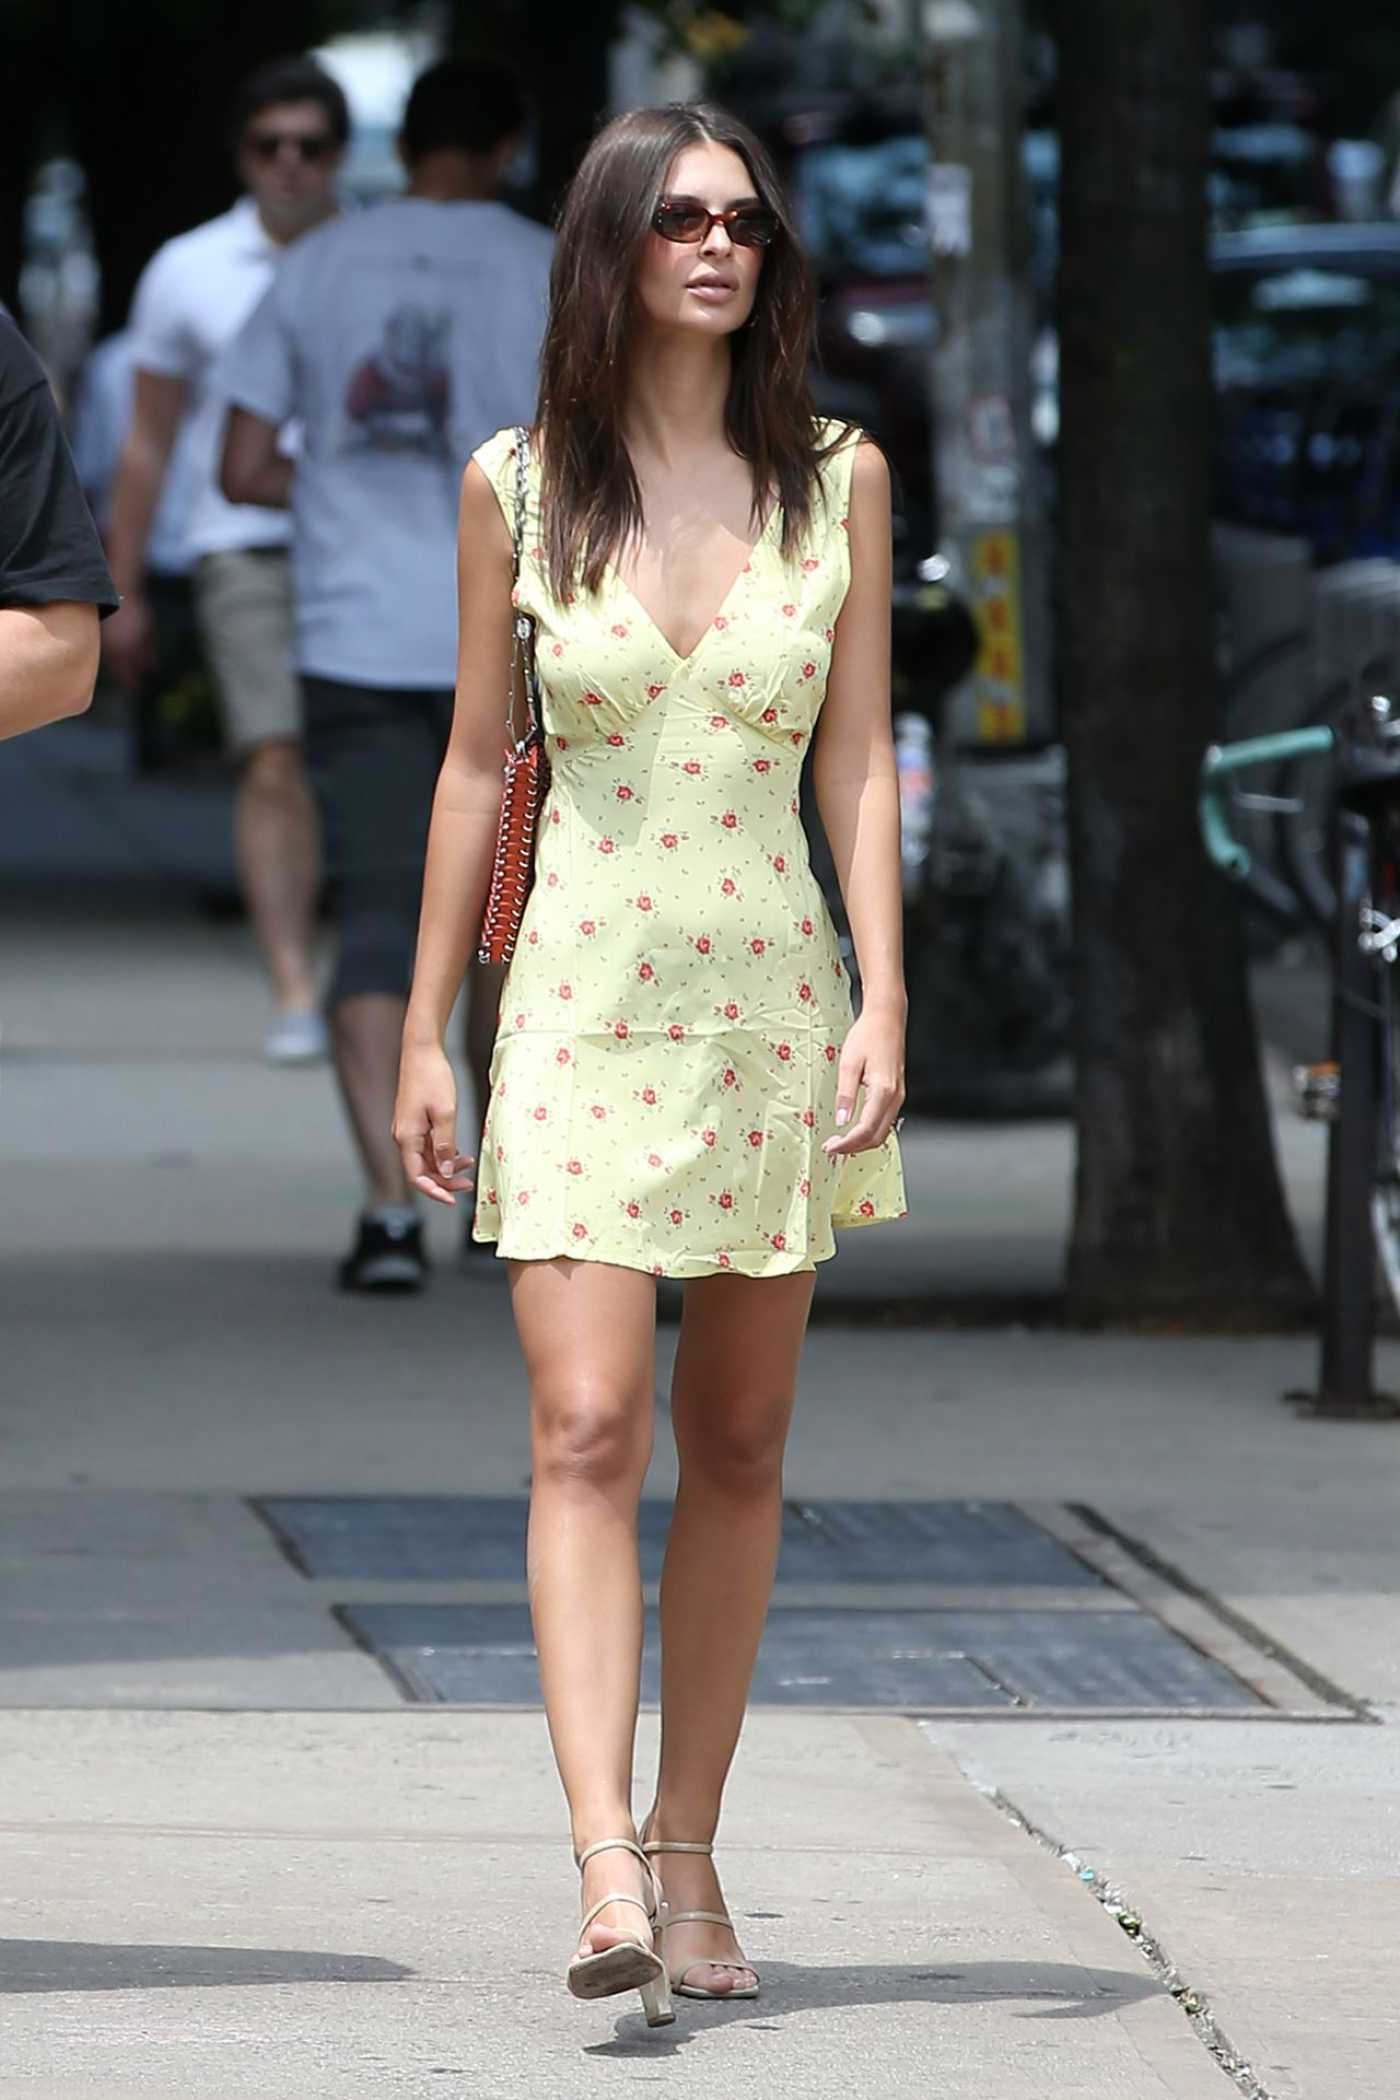 Emily Ratajkowski in a Yellow Dress Was Seen Out in New York City 06/22/2019